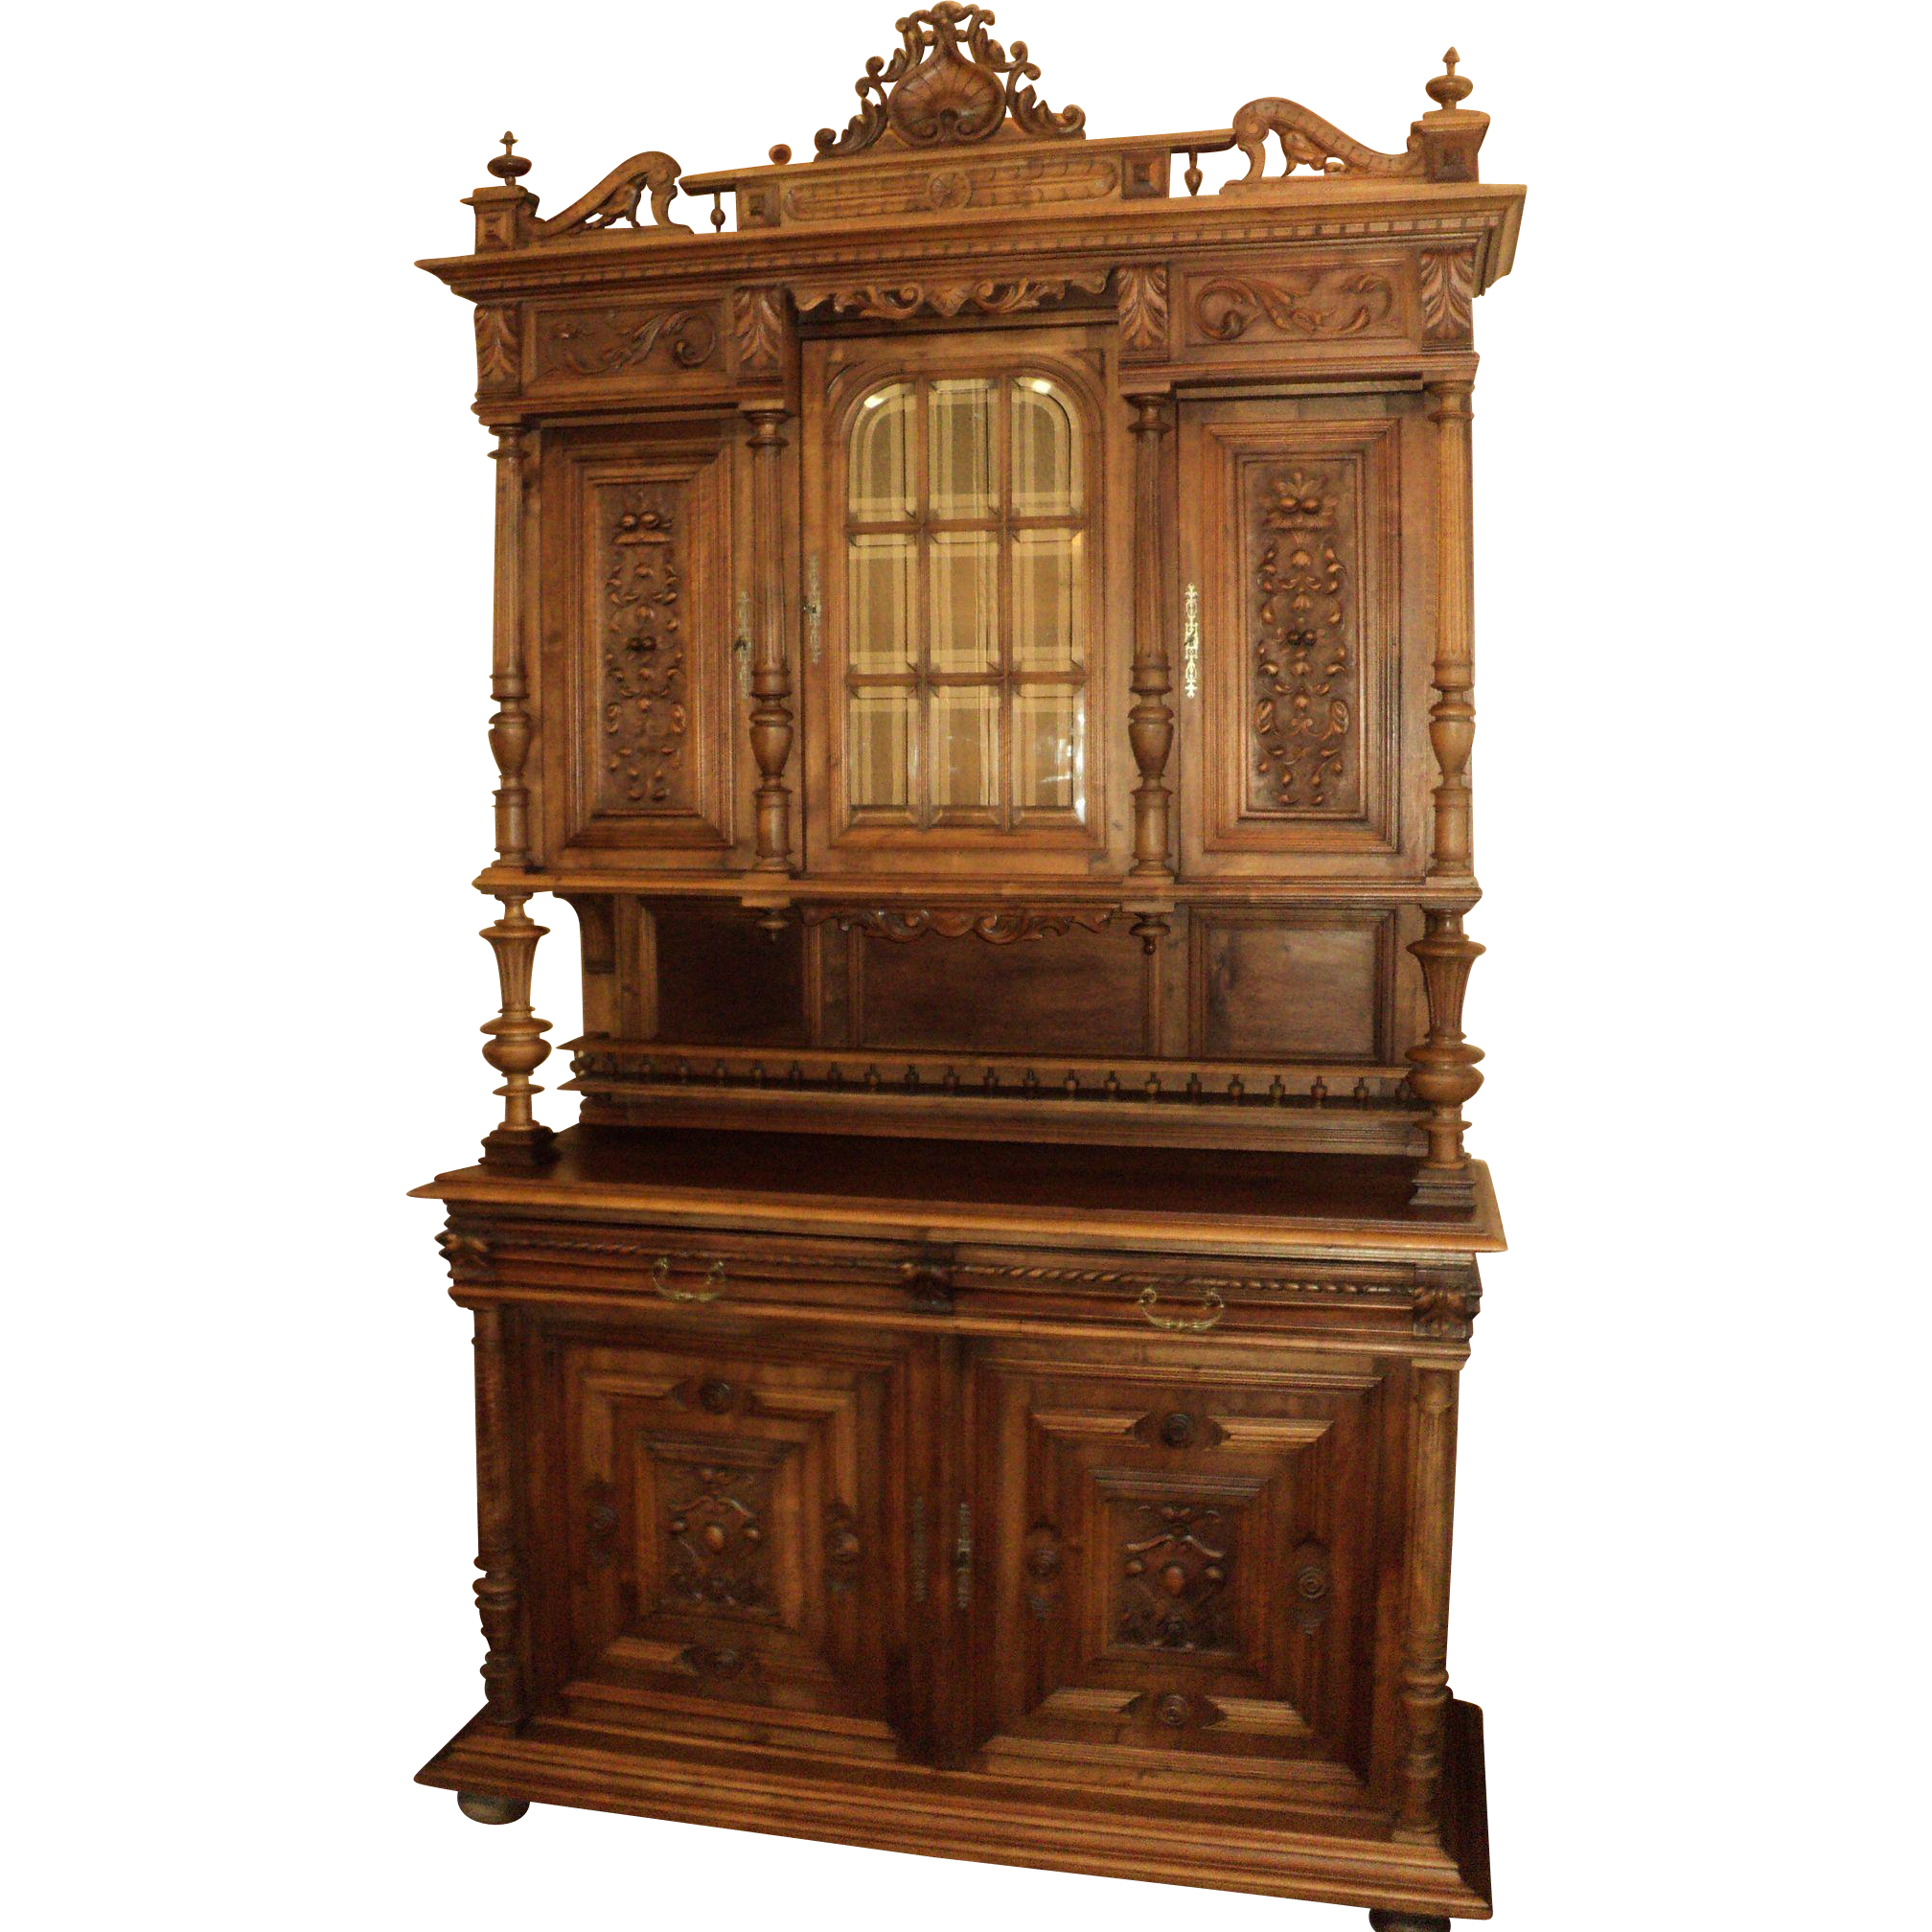 Antique Walnut Court Cabinet, Cupboard, Sideboard from Belgium